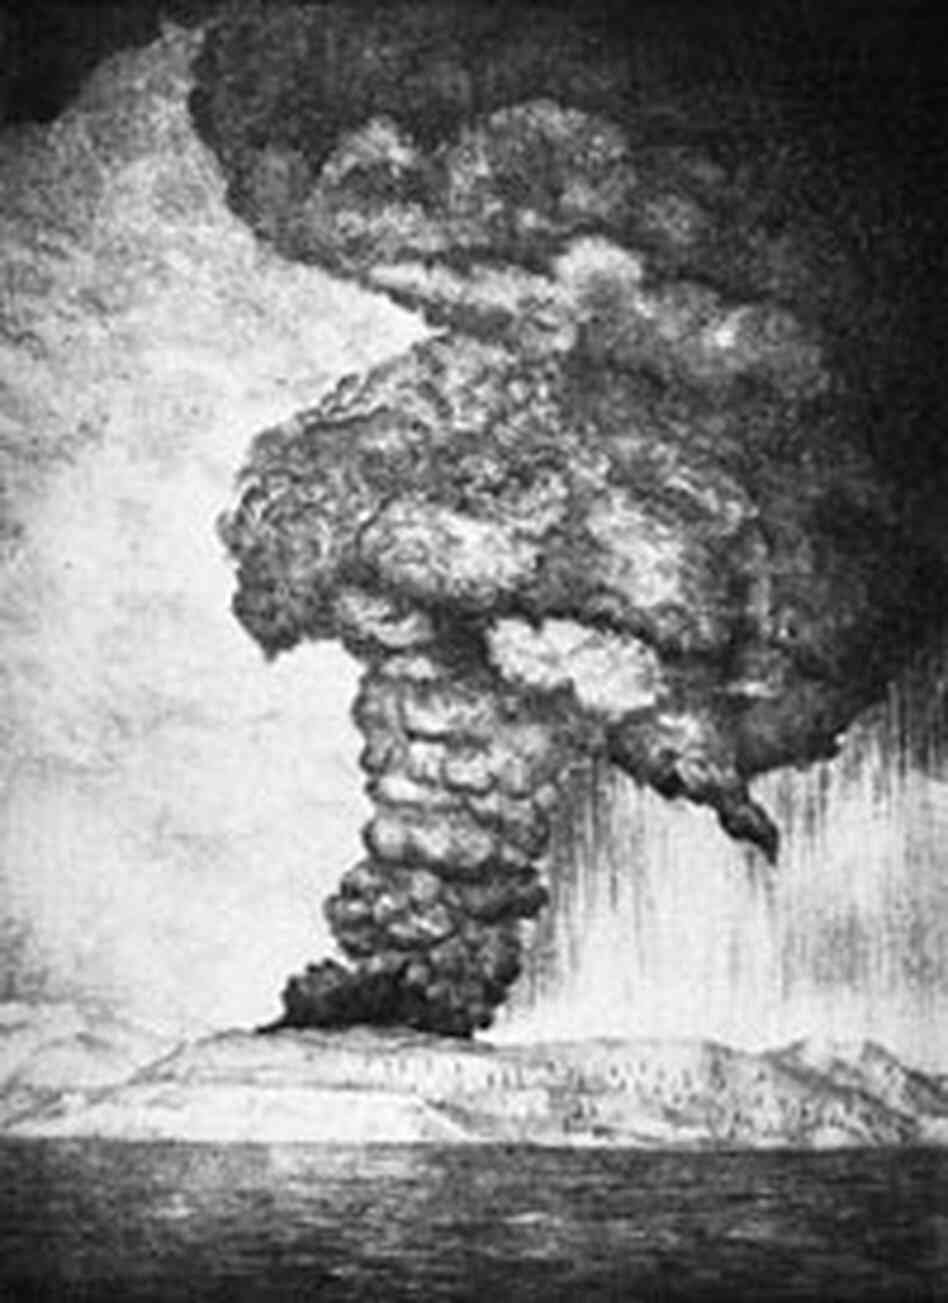 An artist's rendering of the 1883 eruption of Krakatoa.